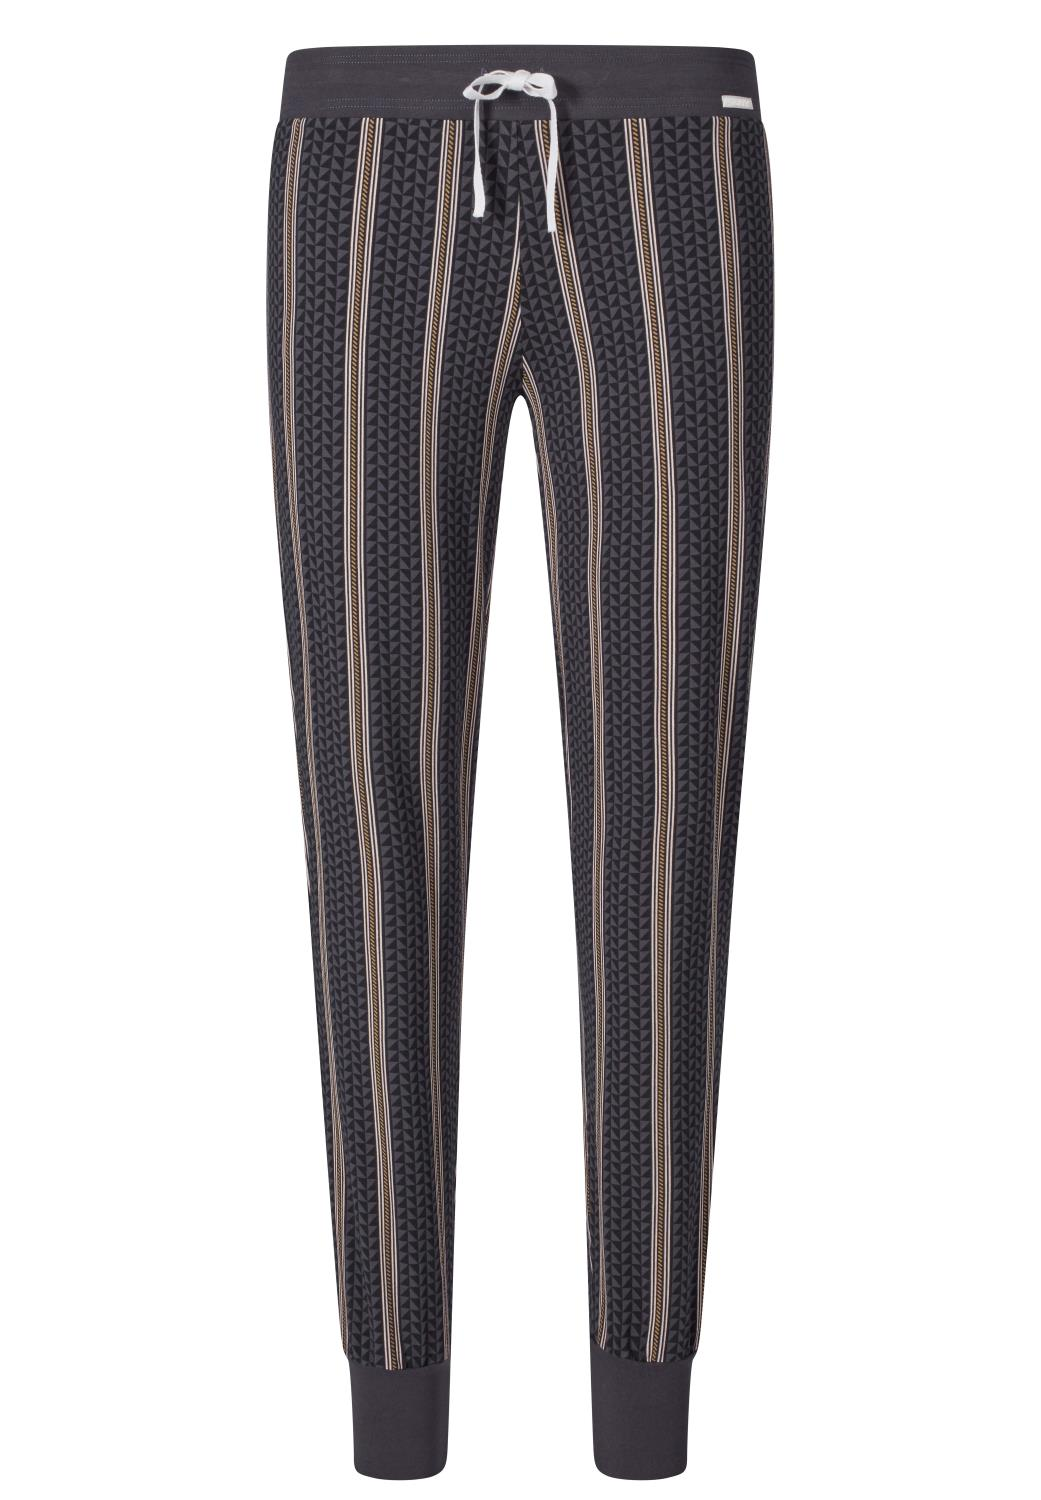 Skiny L. pant long, nineiron graphicstripe